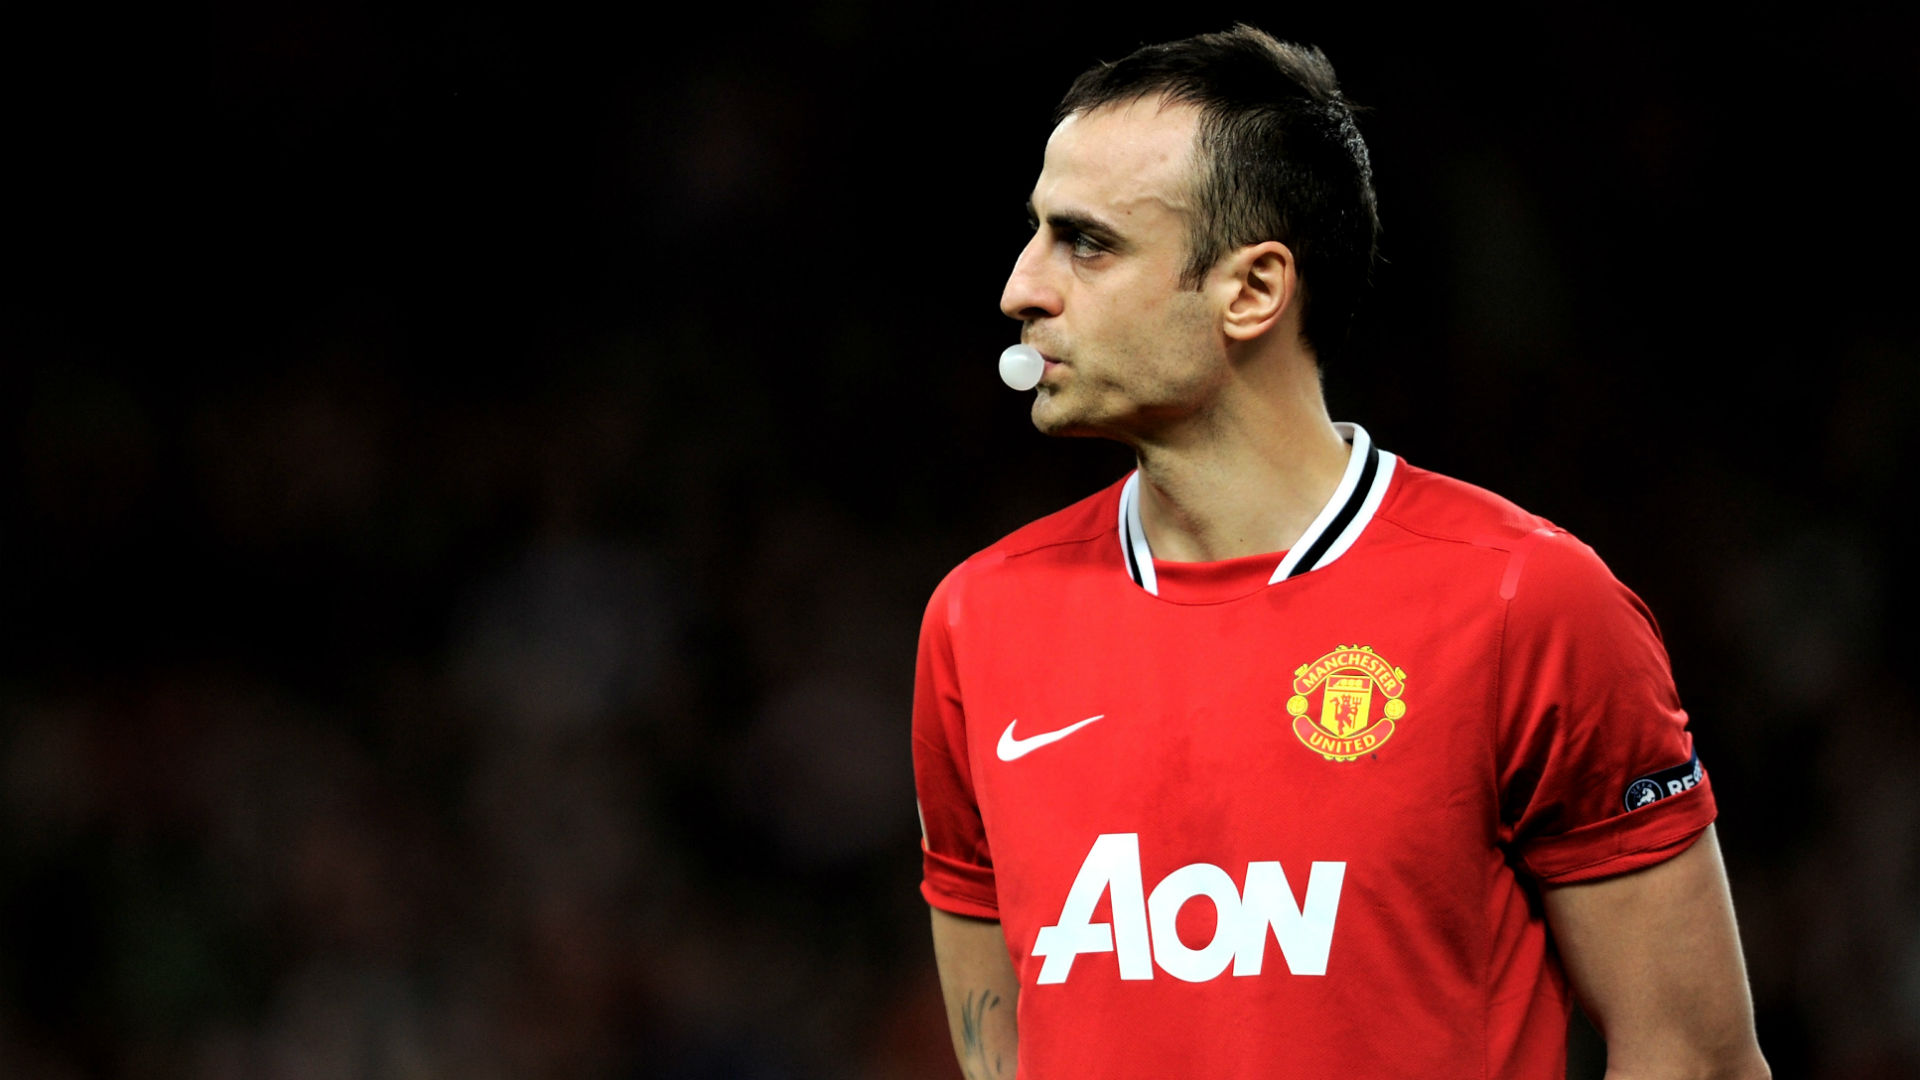 Ex Manchester United striker Dimitar Berbatov joins ISL club Kerala Blasters